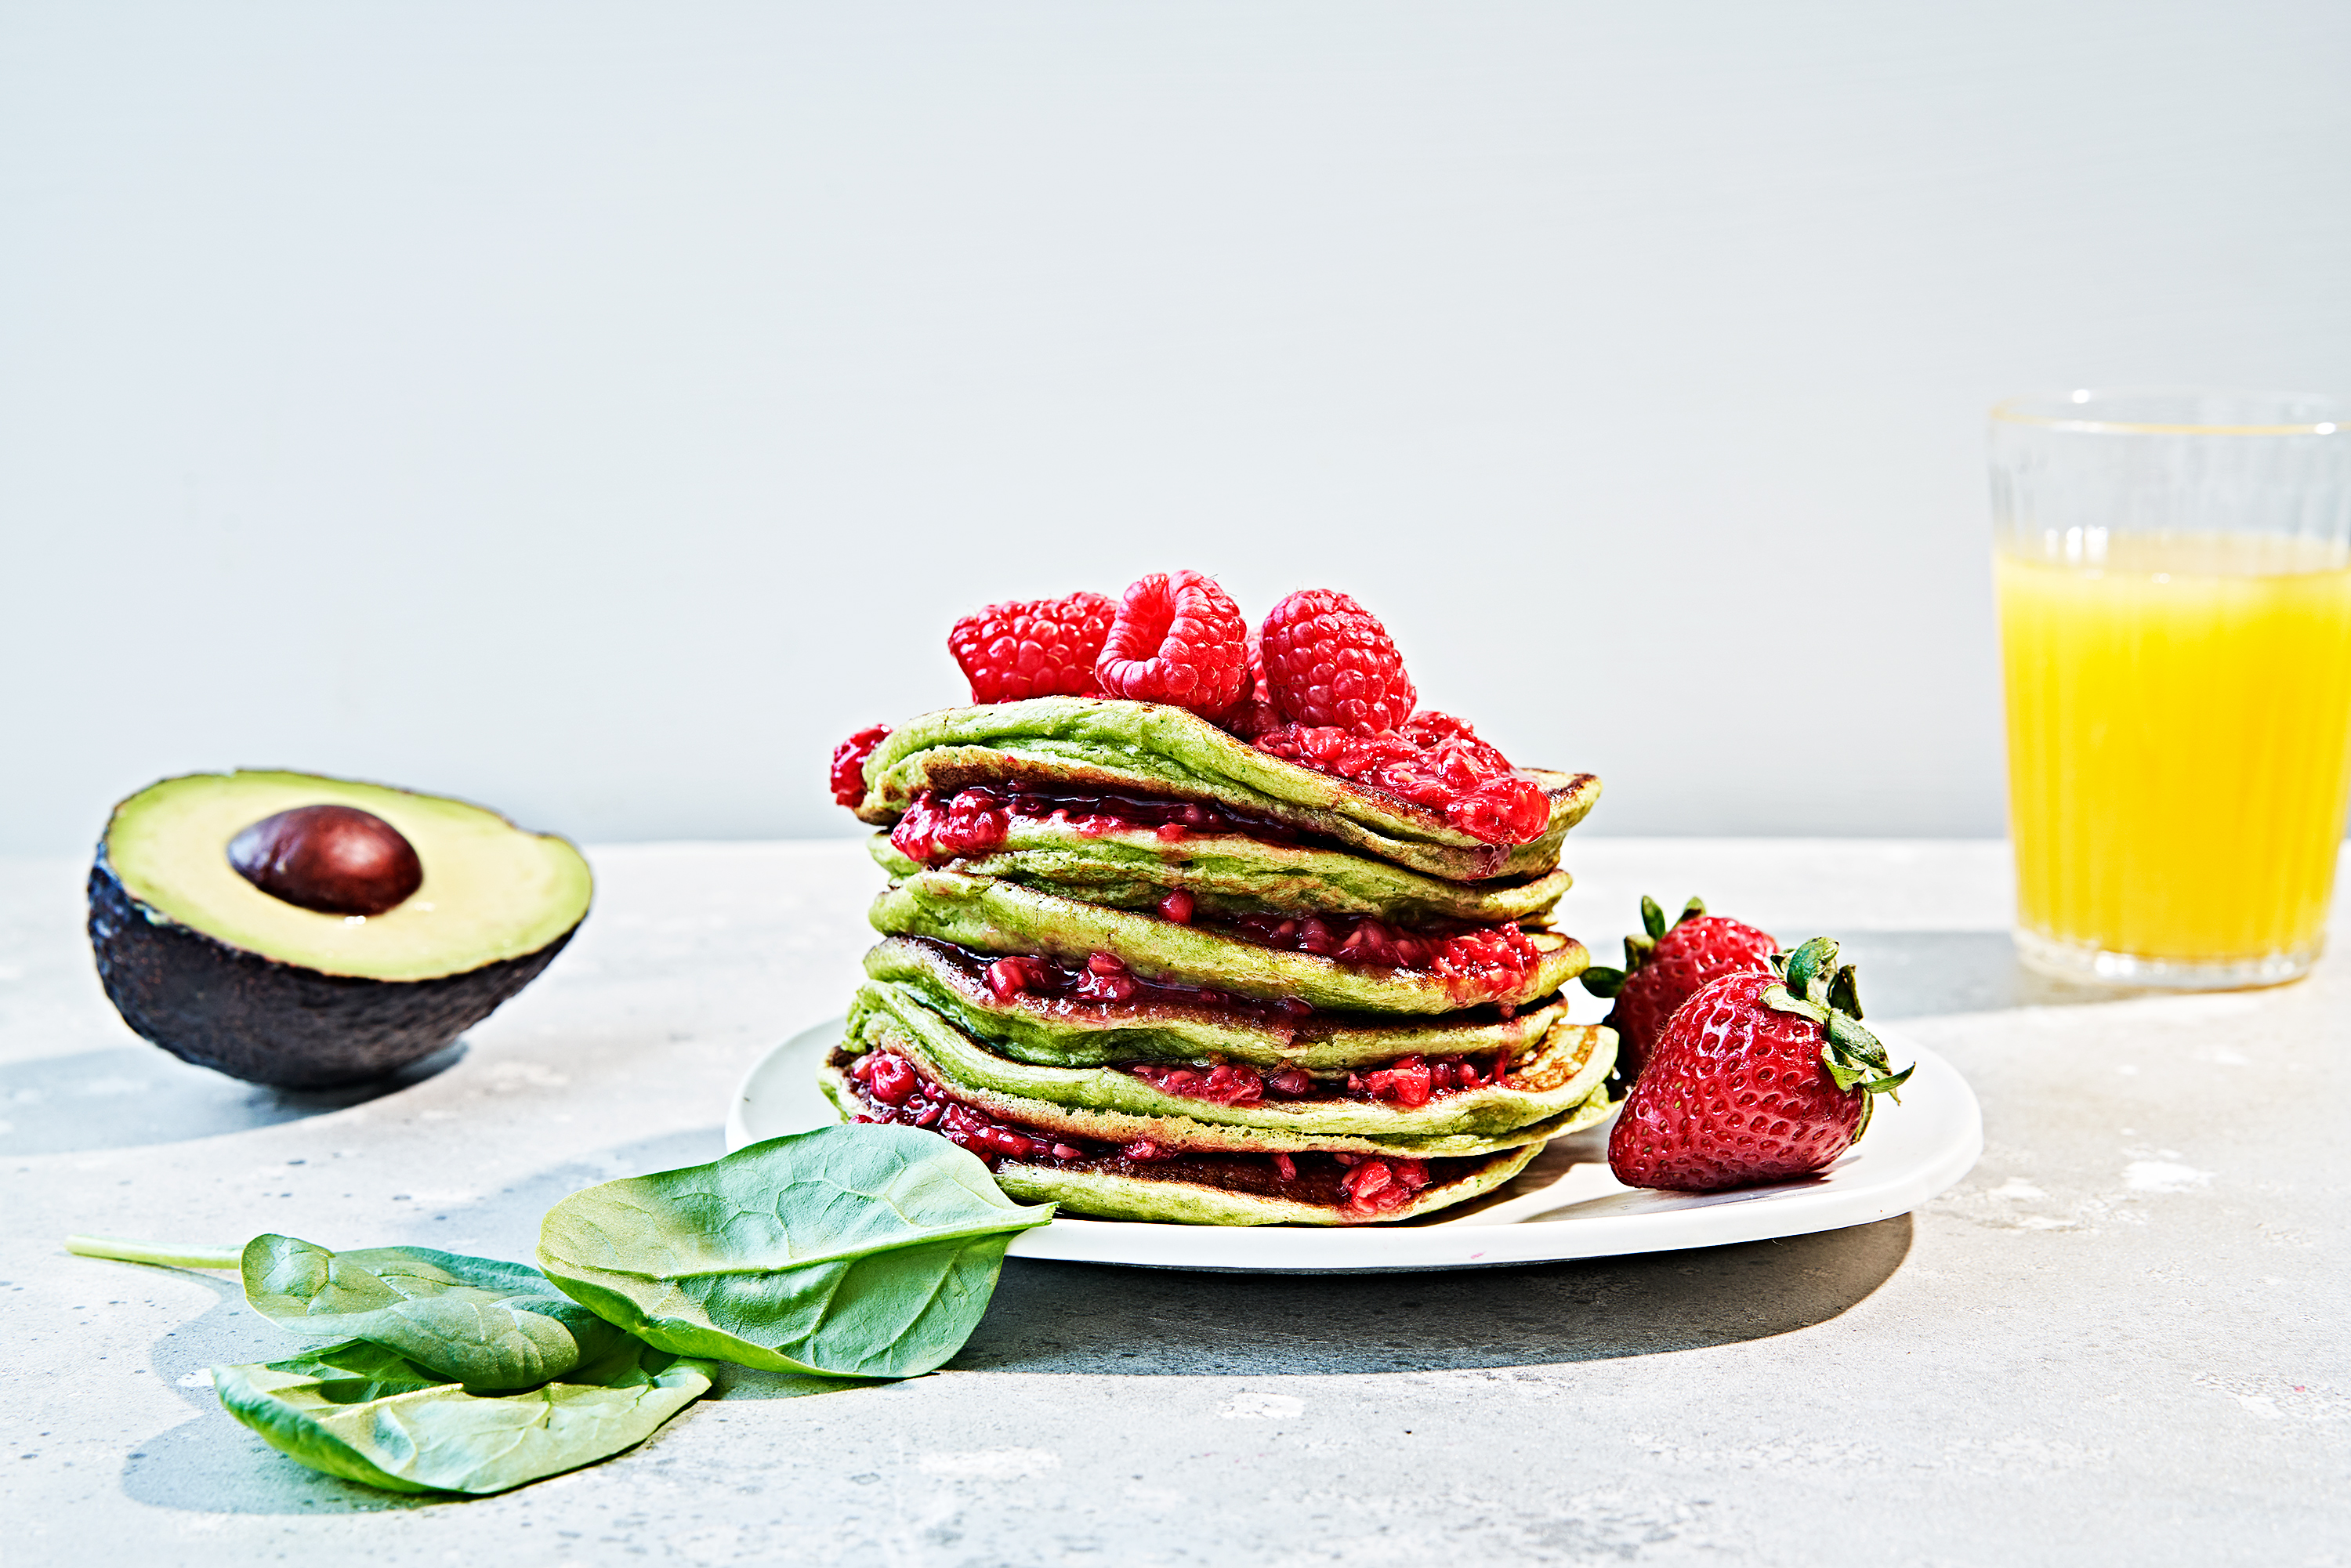 Stack of green monster pancakes made with spinach and topped with raspberries.